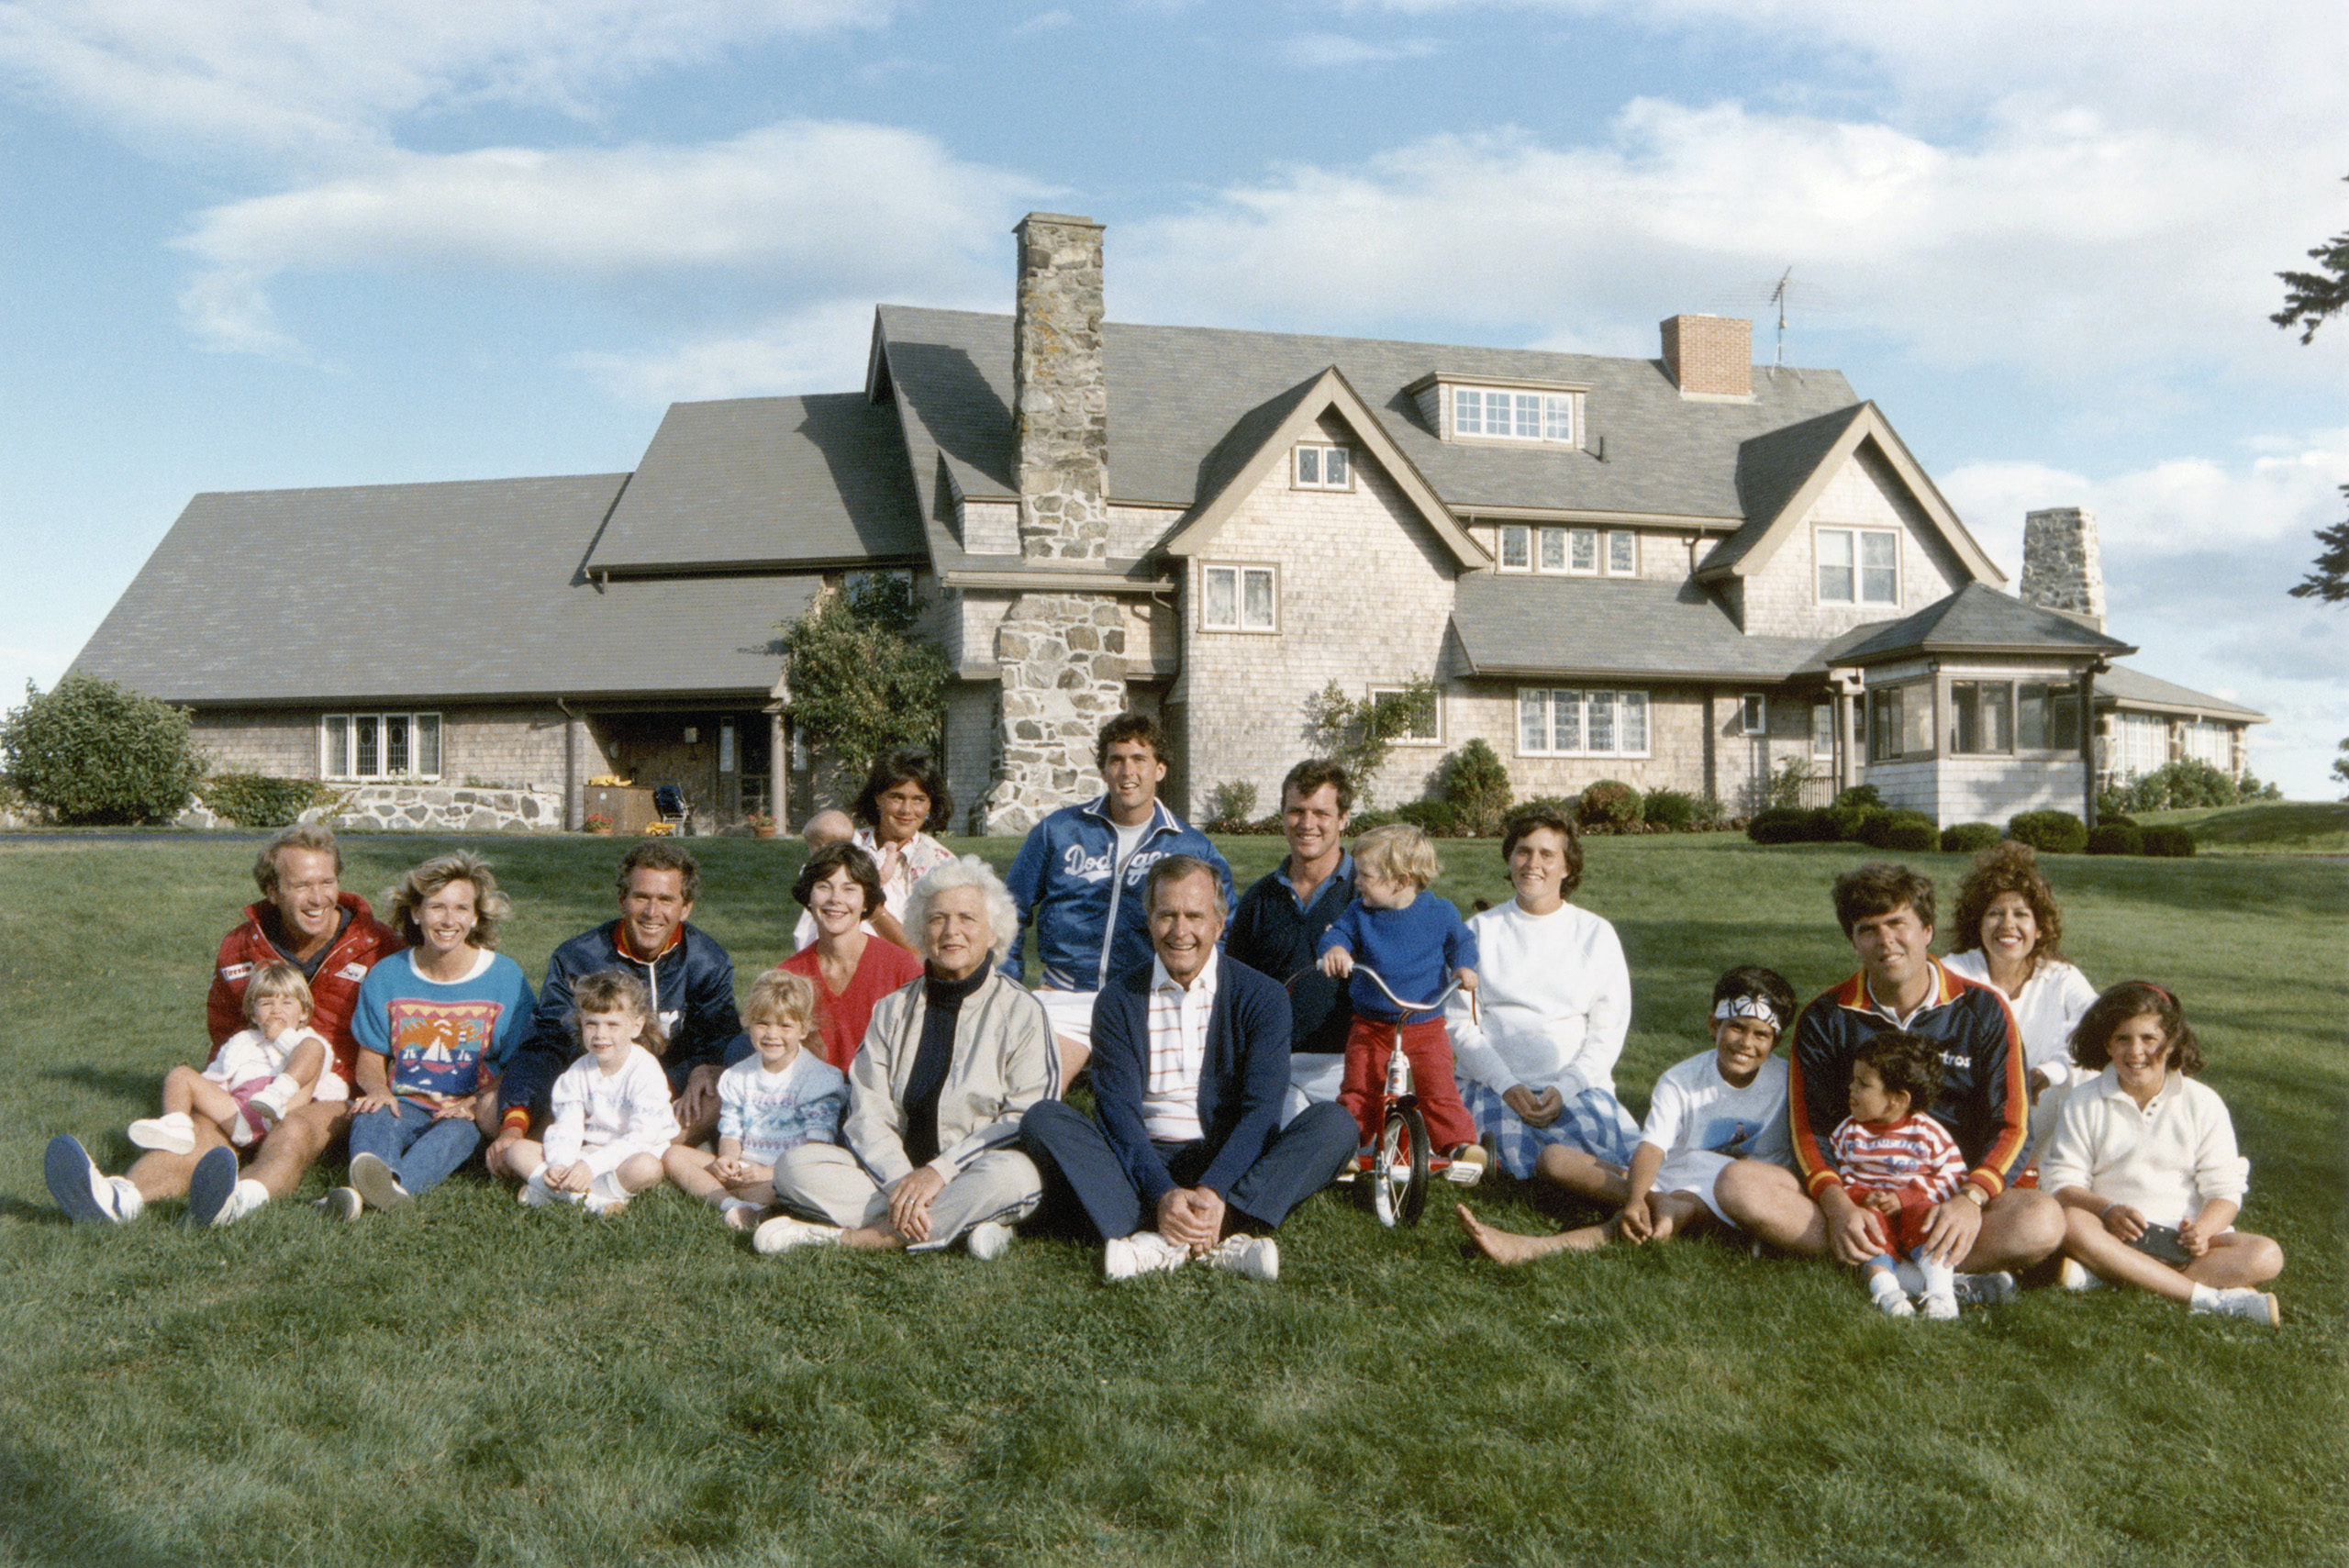 From left to right (without children): Neil and Sharon Bush, George W. Bush and wife Laura, Barbara and George Bush, Margaret and Marvin, Bobby Koch and Dorothy, Jeb and Columba, are seen in this Bush family photo taken in Kennebunkport, Maine on Aug. 24, 1986.